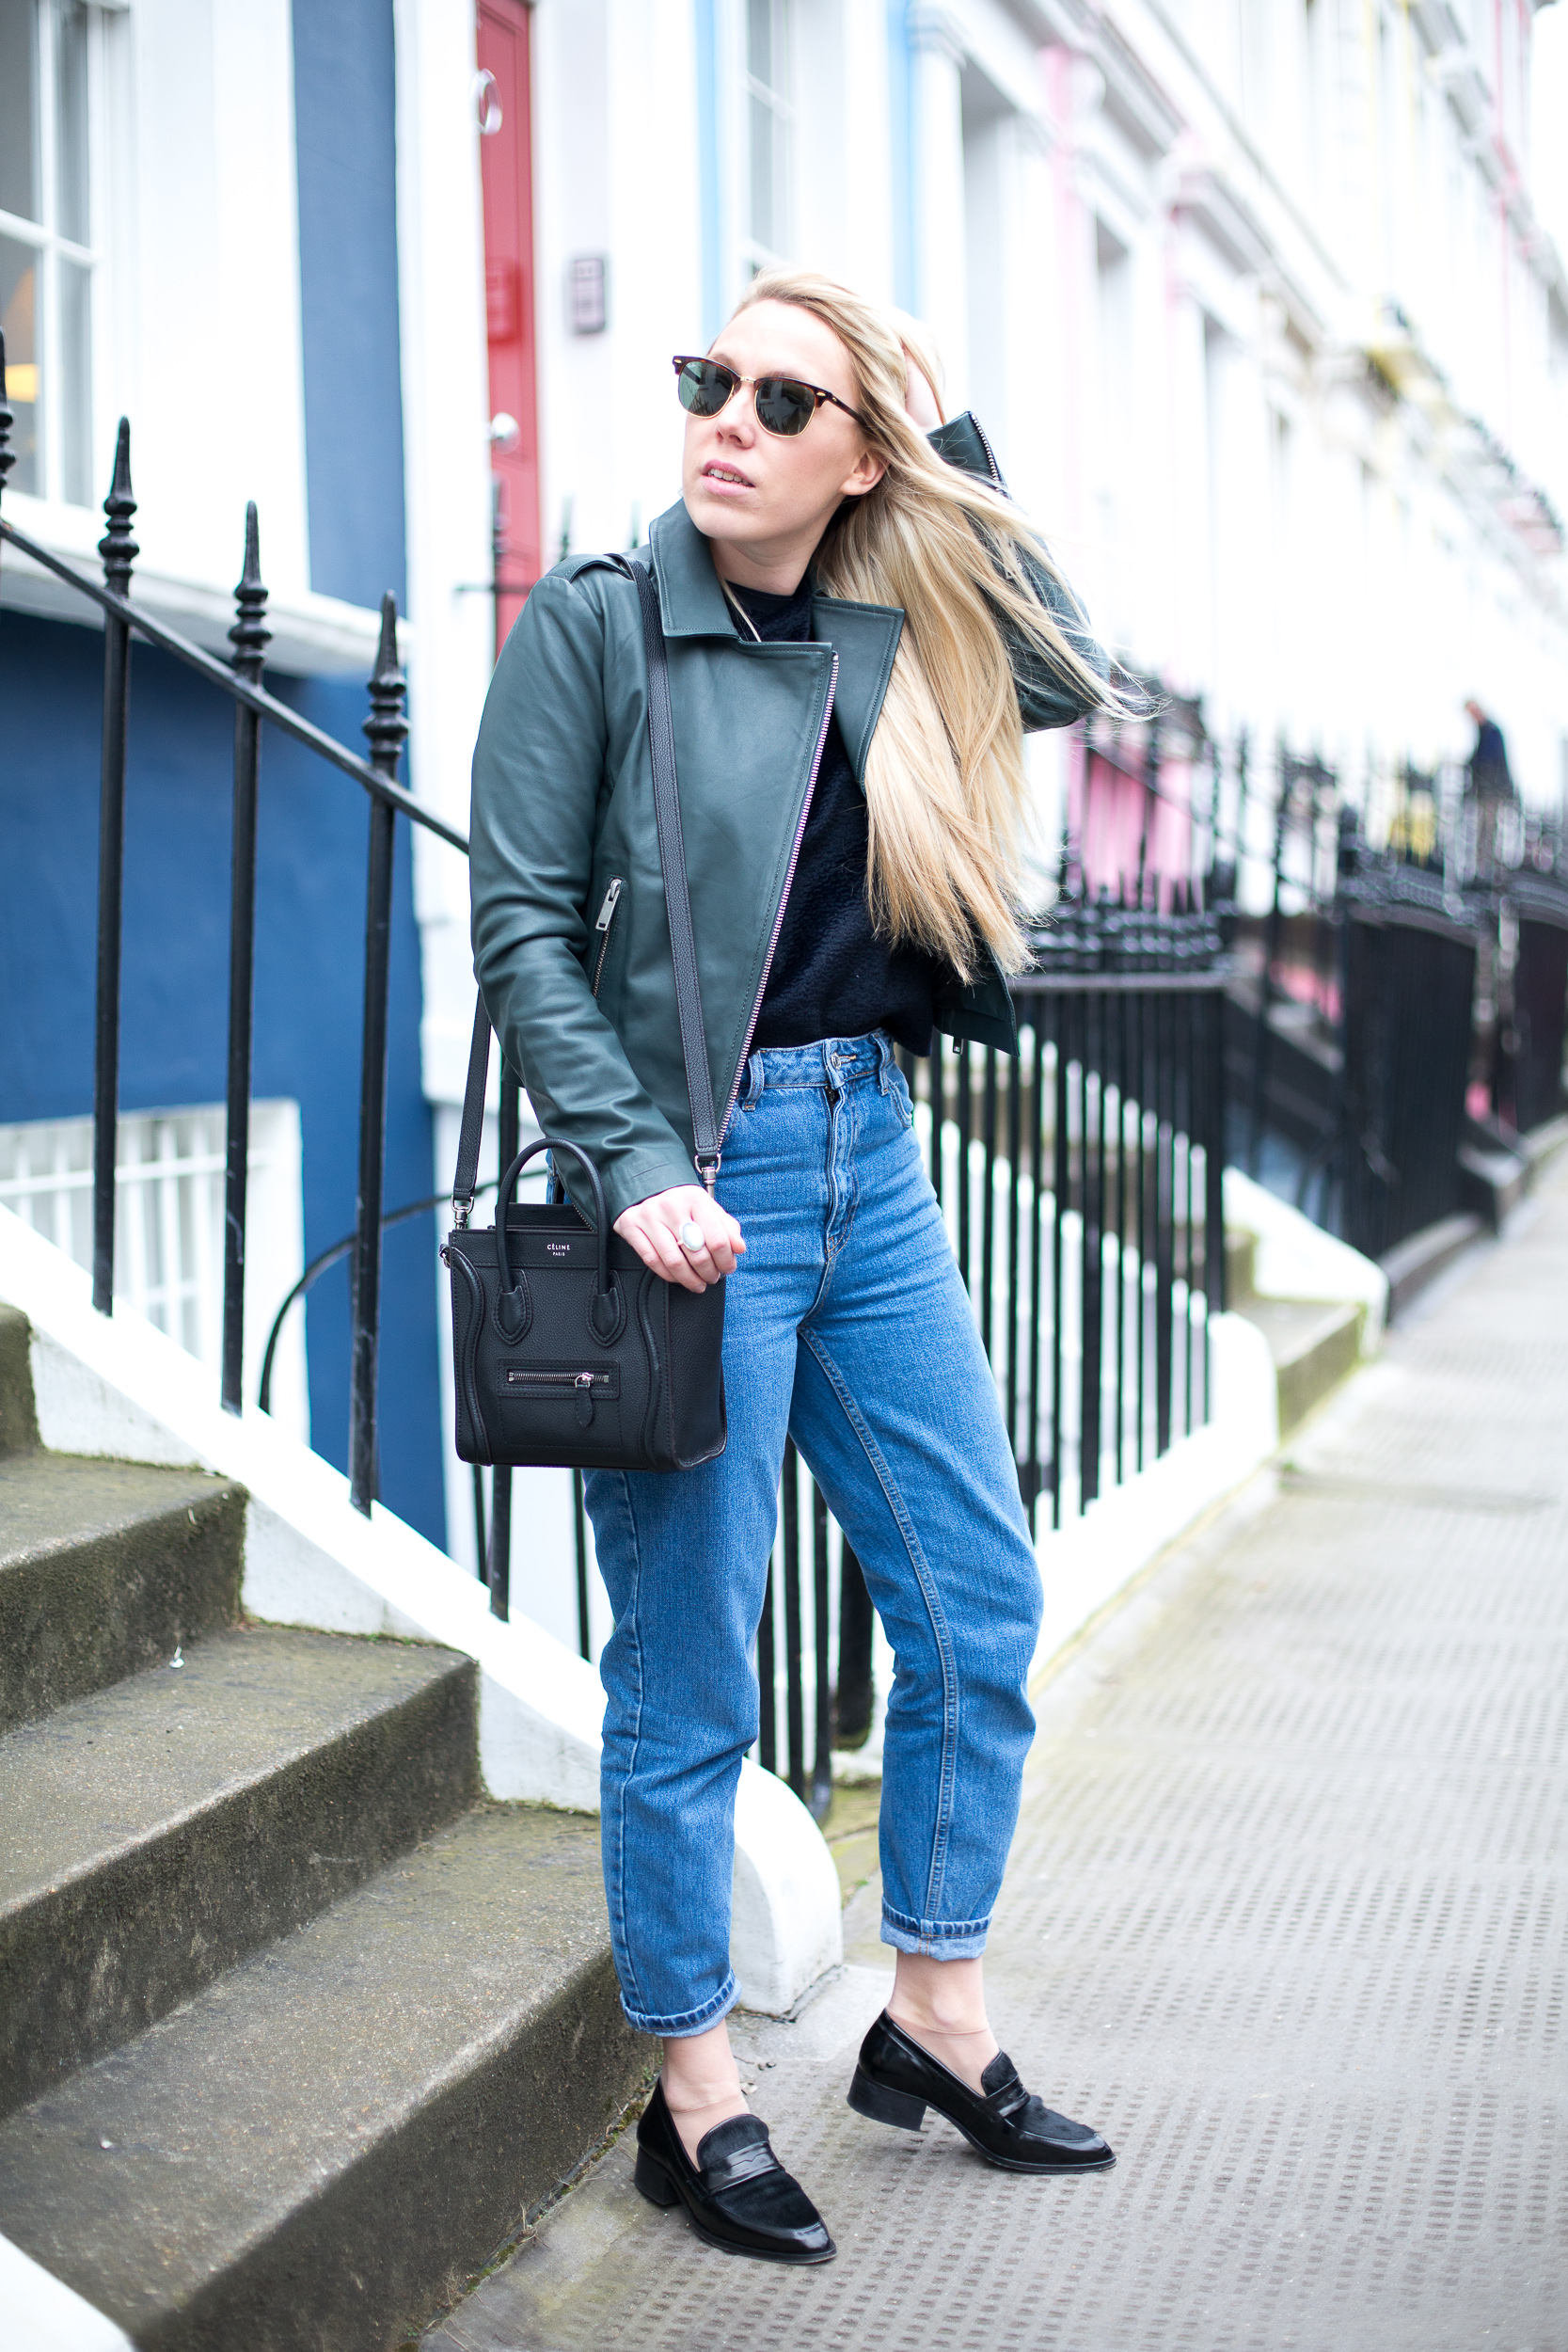 MOM JEANS AND LEATHER JACKET